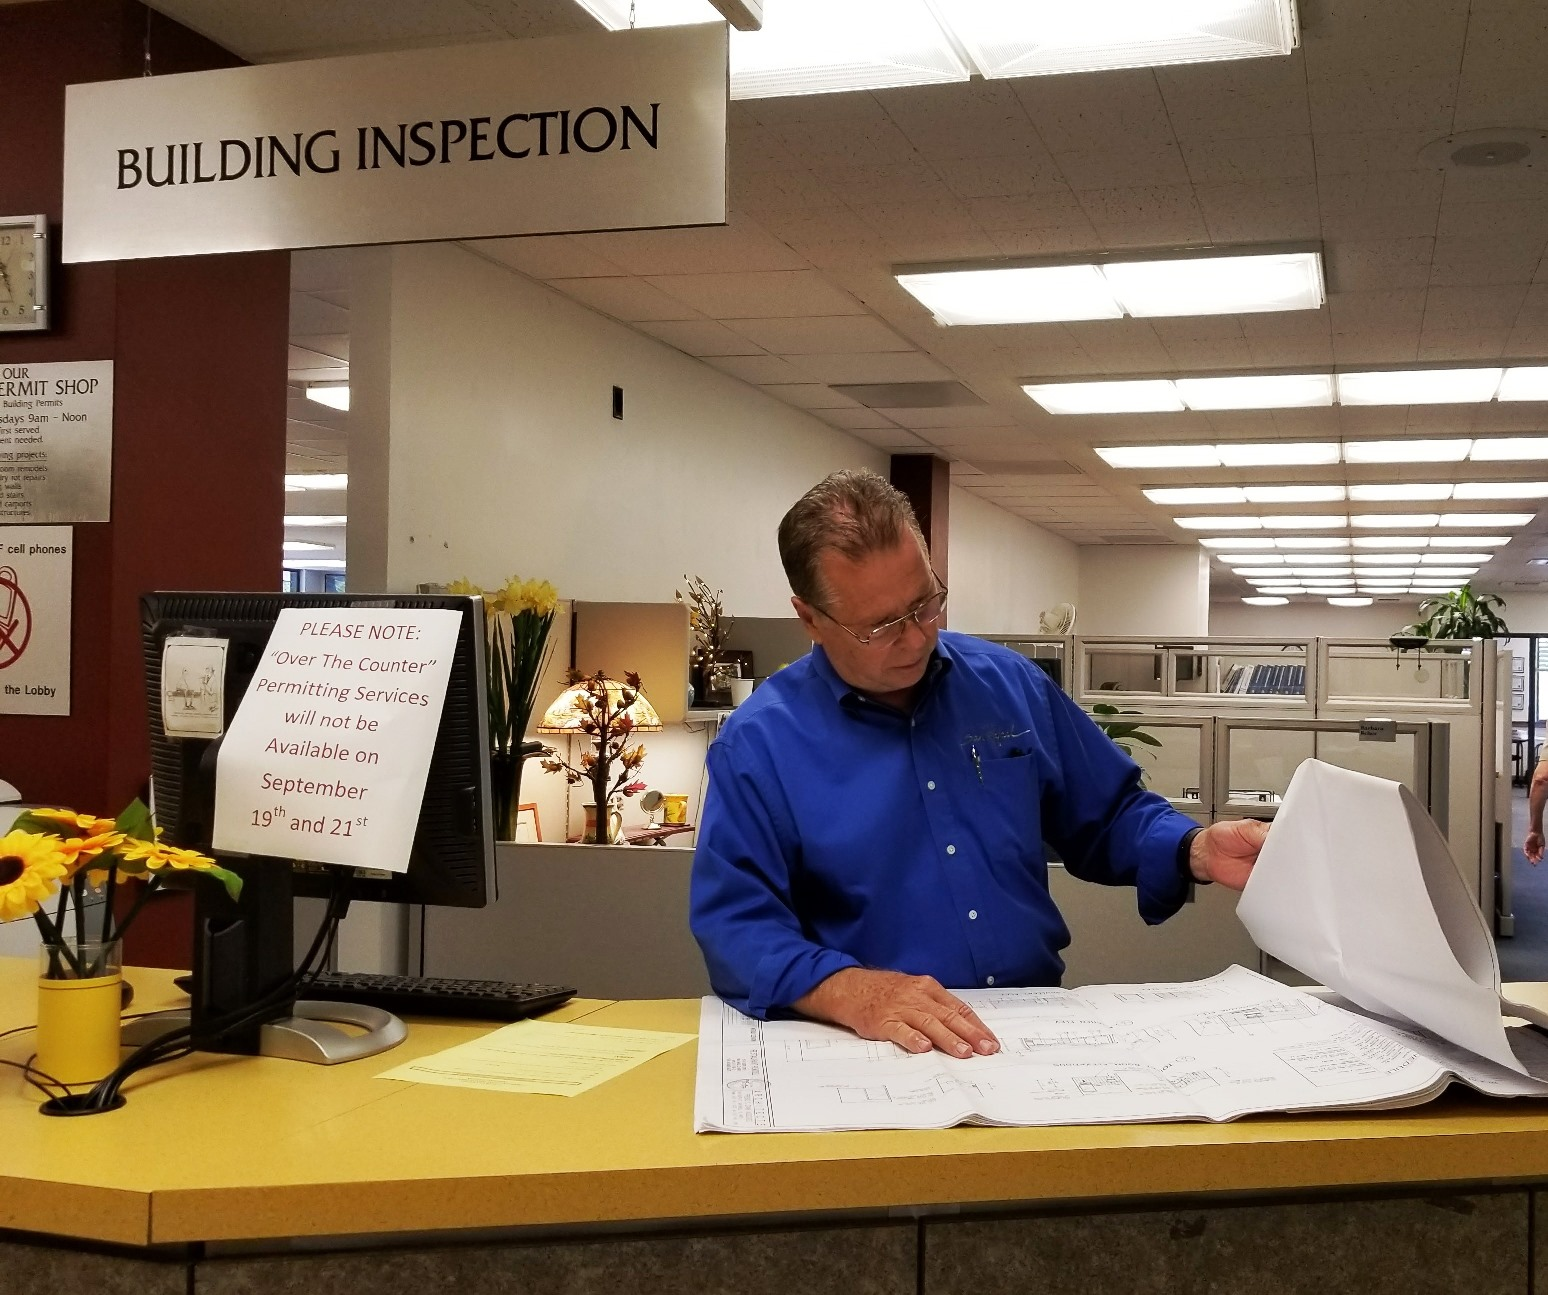 Building Inspection Services : Quot over the counter building permit service unavailable